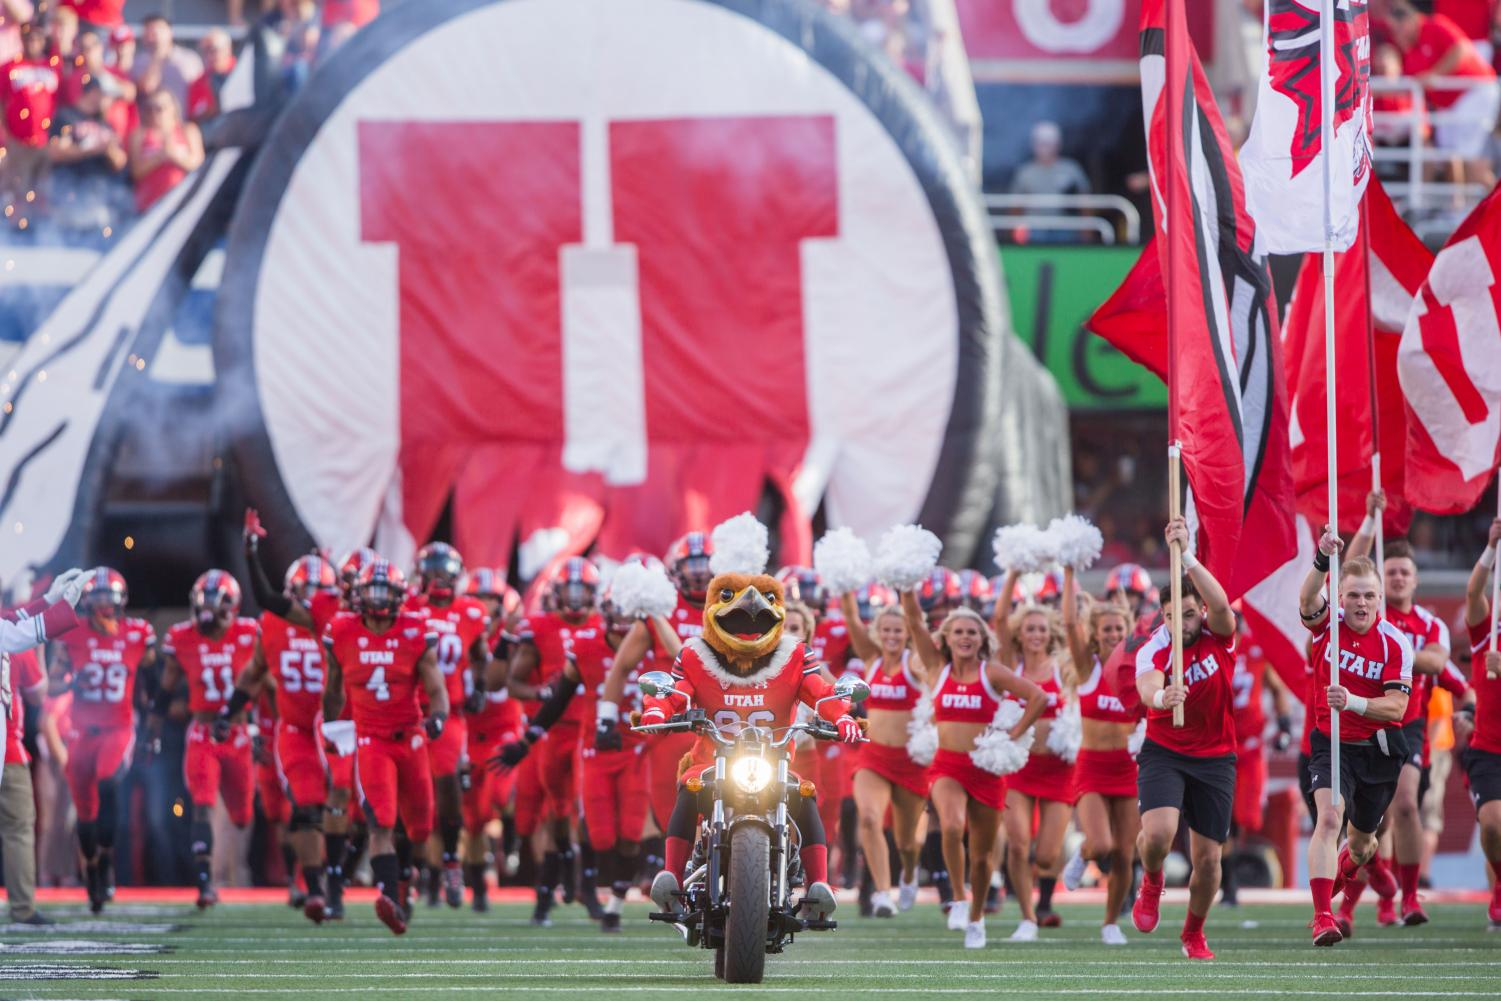 The University of Utah football team marched onto the field during the NCAA football game vs. Weber State at Rice-Eccles Stadium in Salt Lake City, UT on Thursday August 30, 2018(Photo by Curtis Lin | The Daily Utah Chronicle)